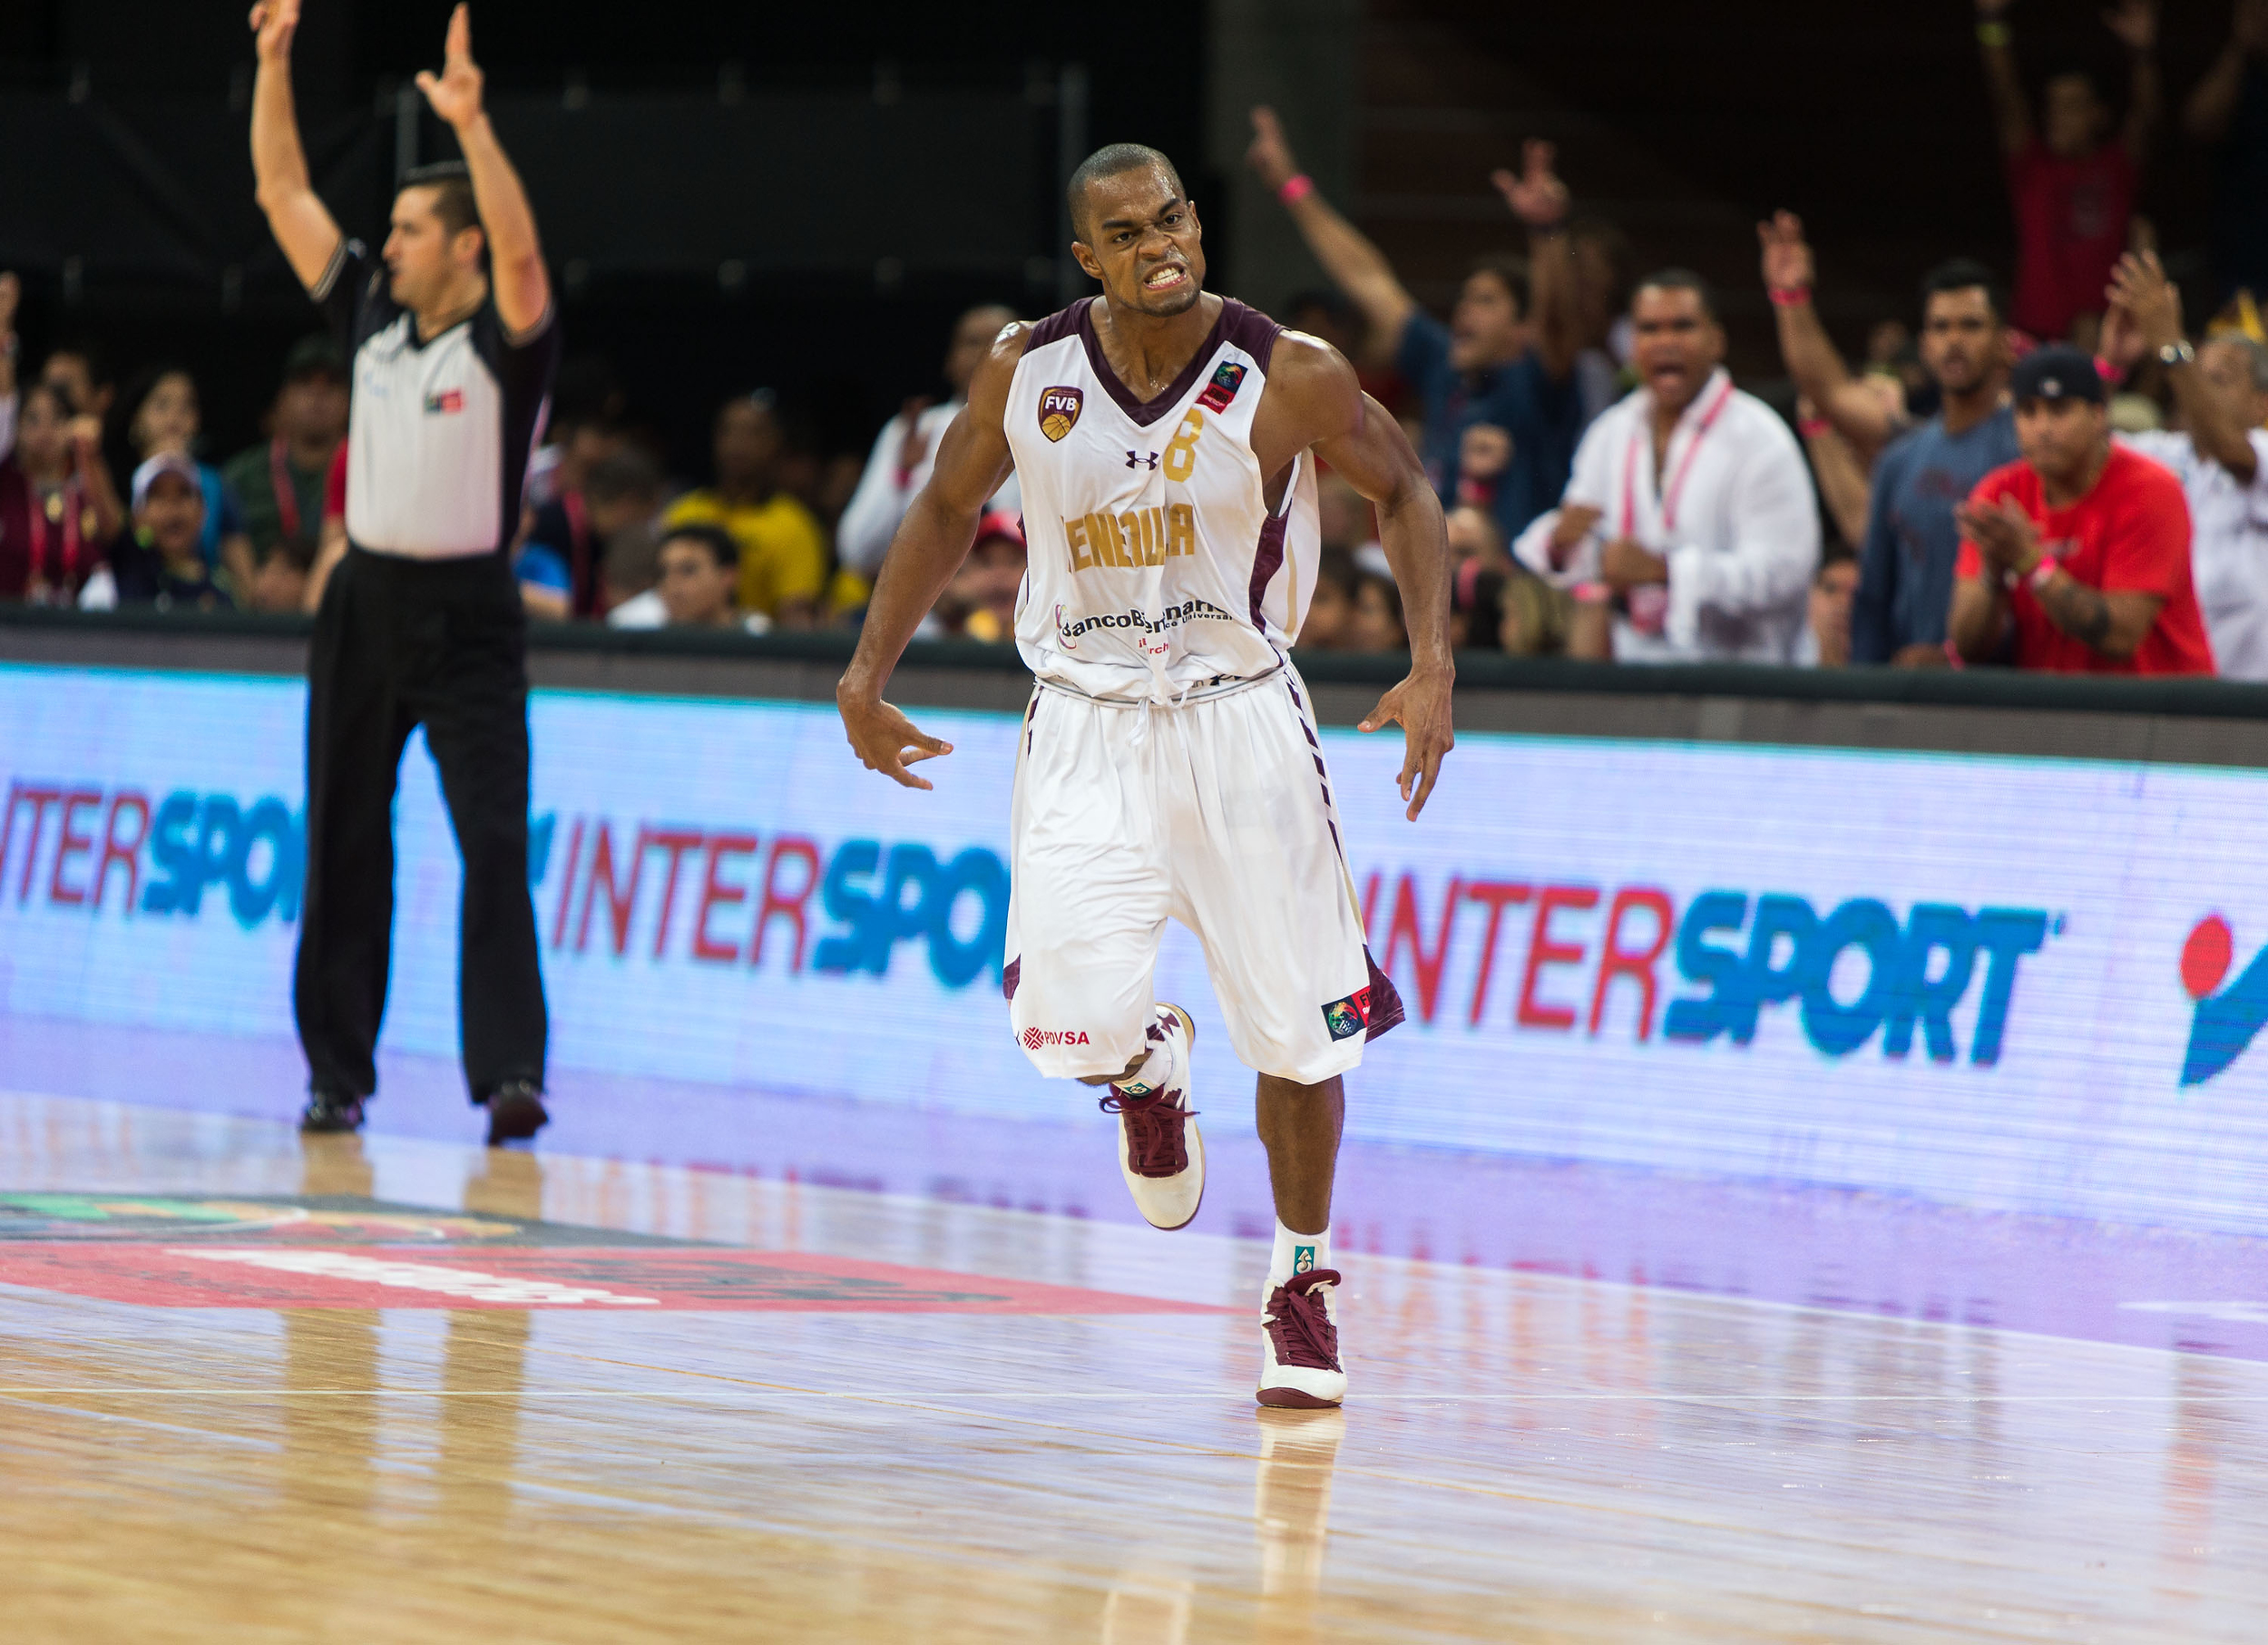 David Cubillan celebrates a three in the middle of a furious run by his Venezuela team, much to the delight of the rambunctious crowd.